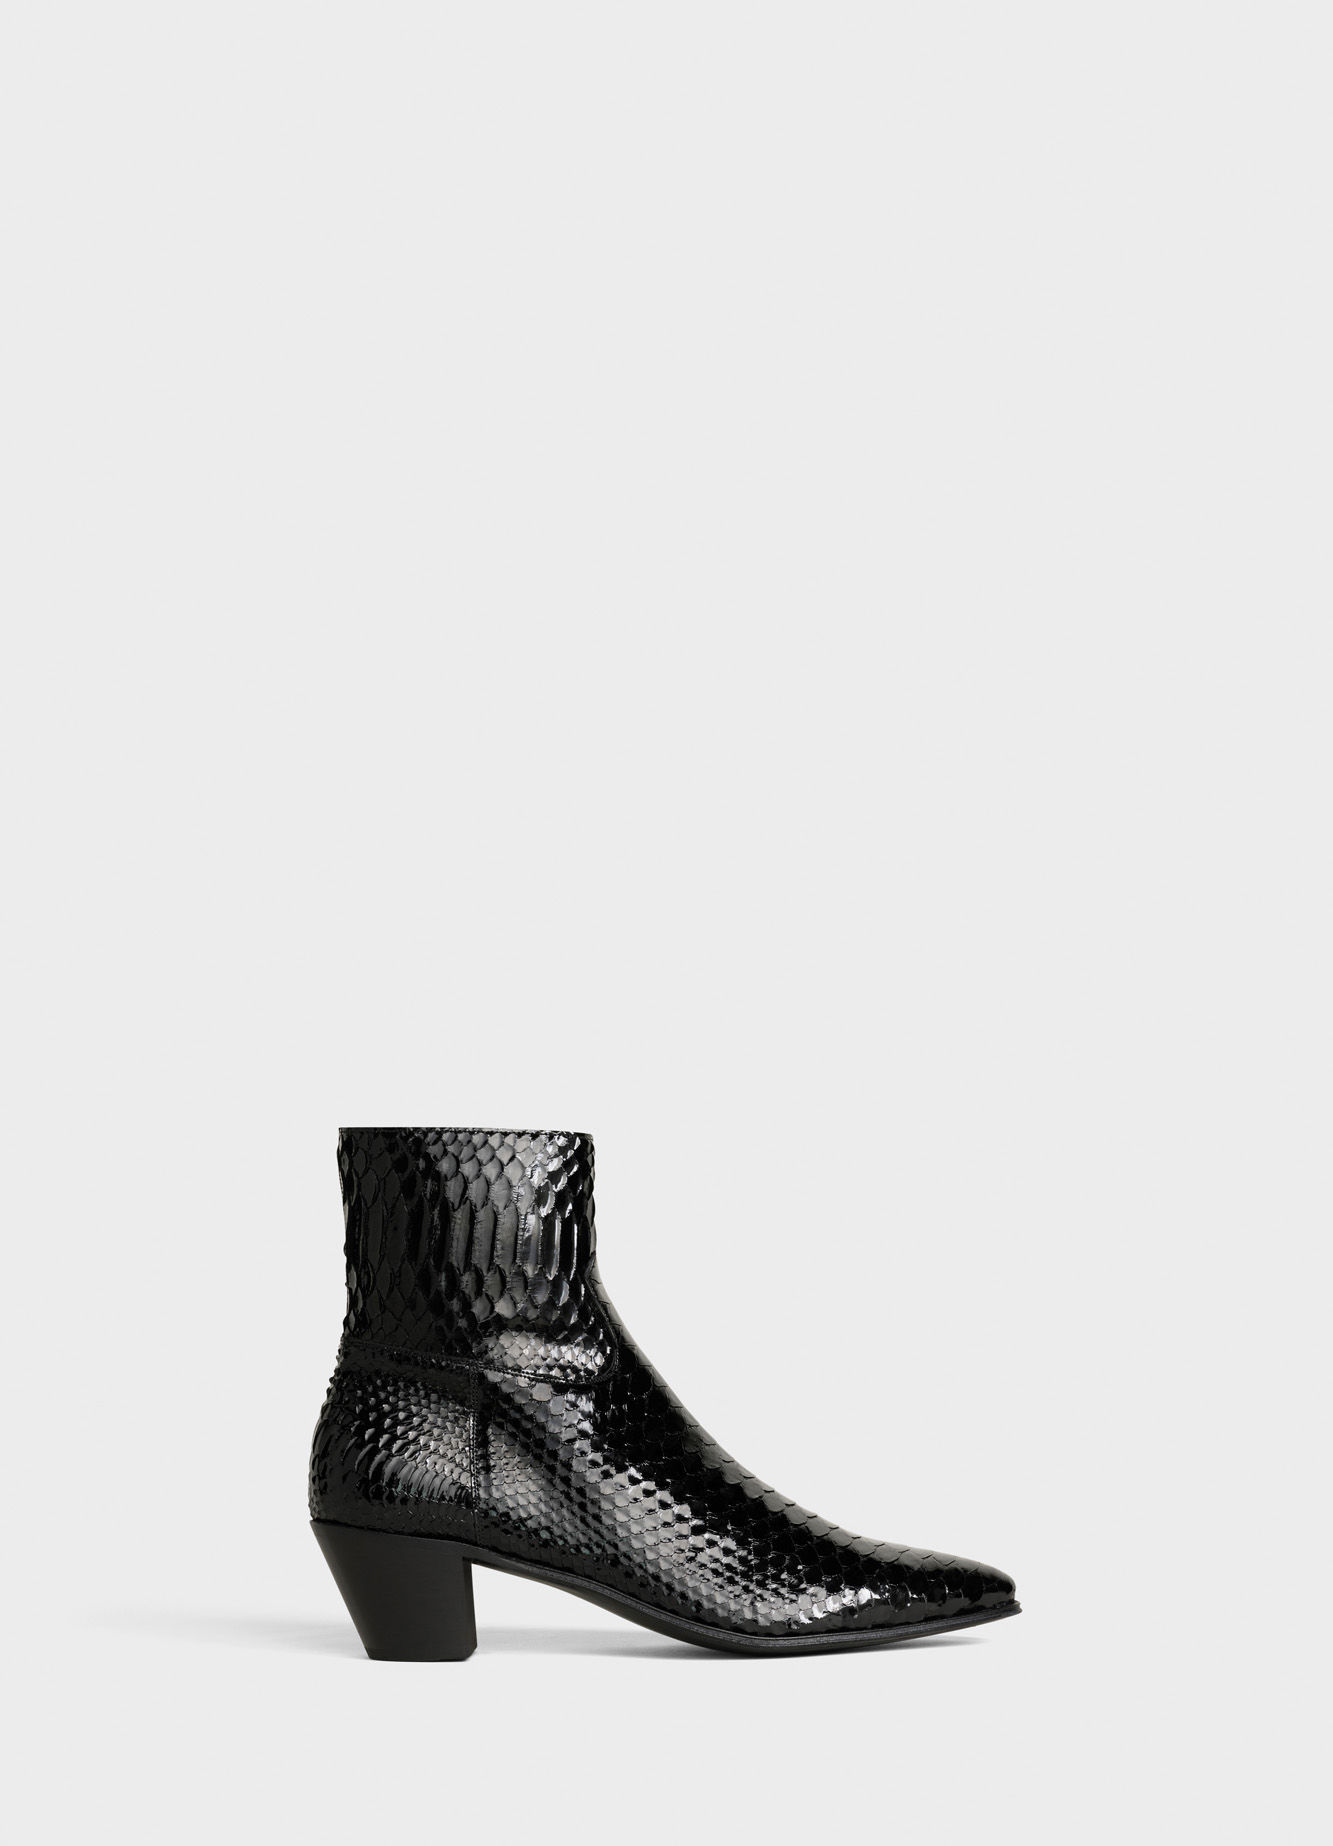 CELINE BOOT JACNO IN LACQUERED PYTHON